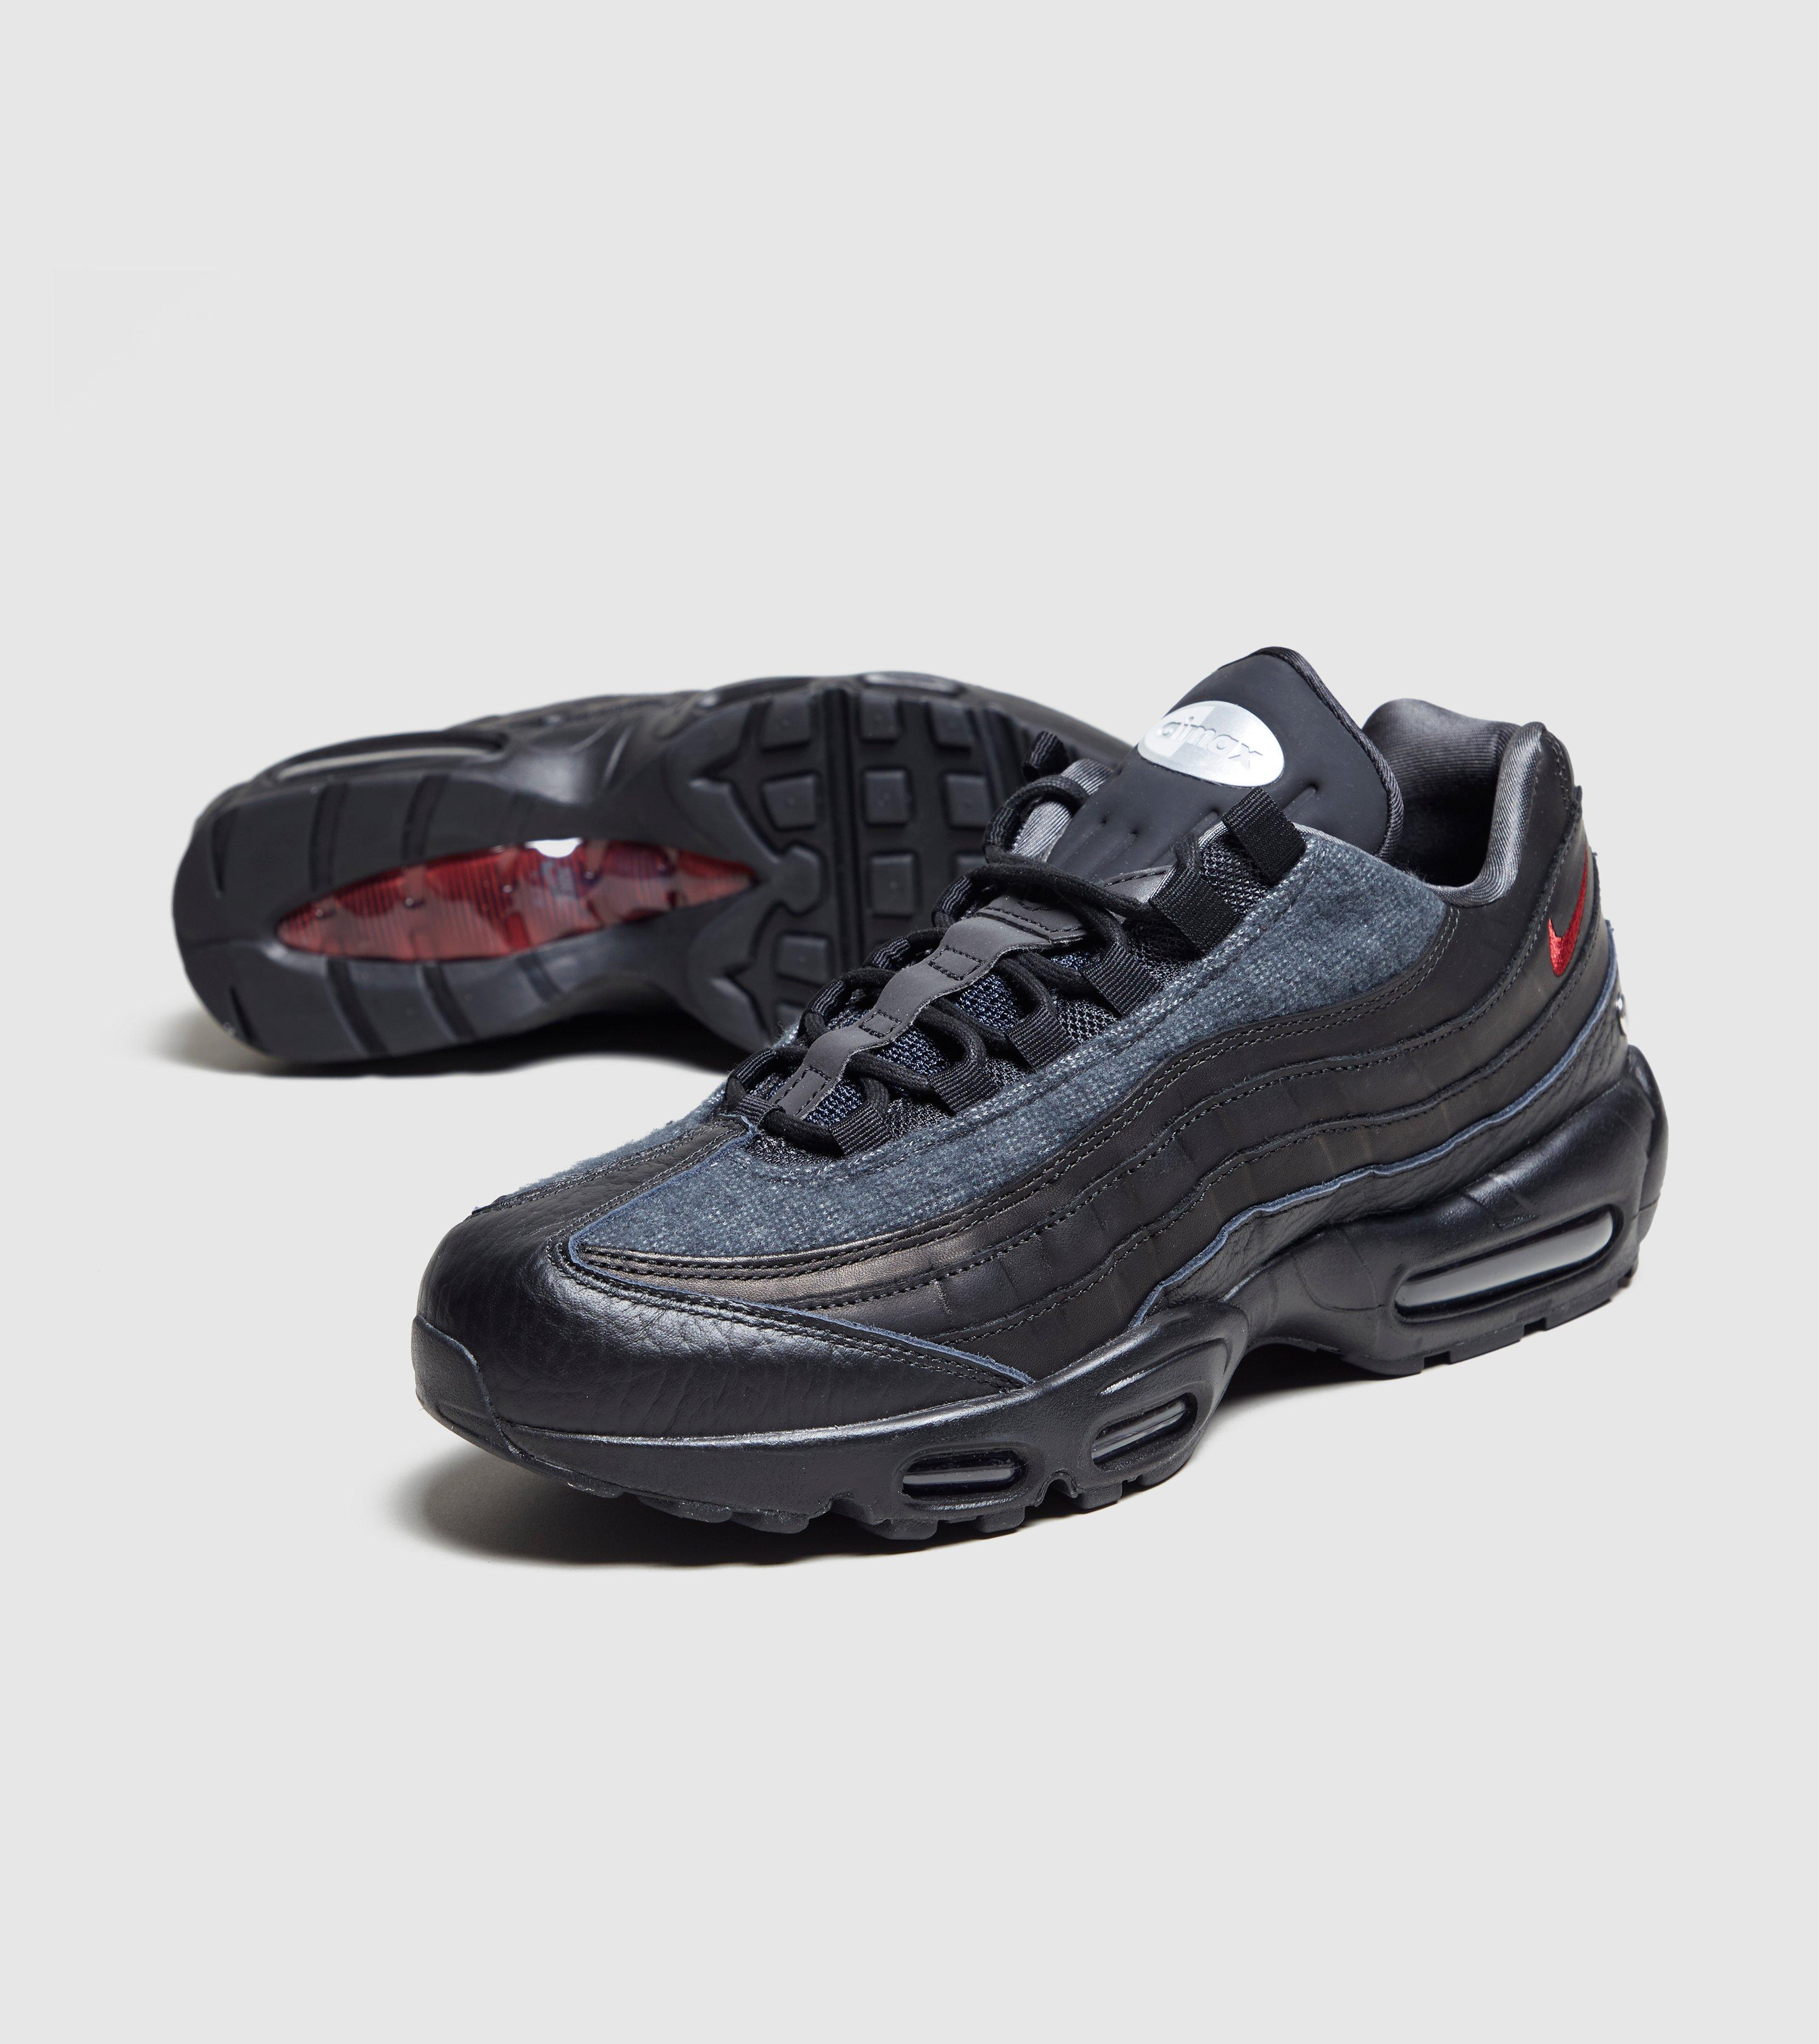 Nike Air Max Pack' 95 'jacket Pack' Max in Nero for Uomo Lyst e47f5c